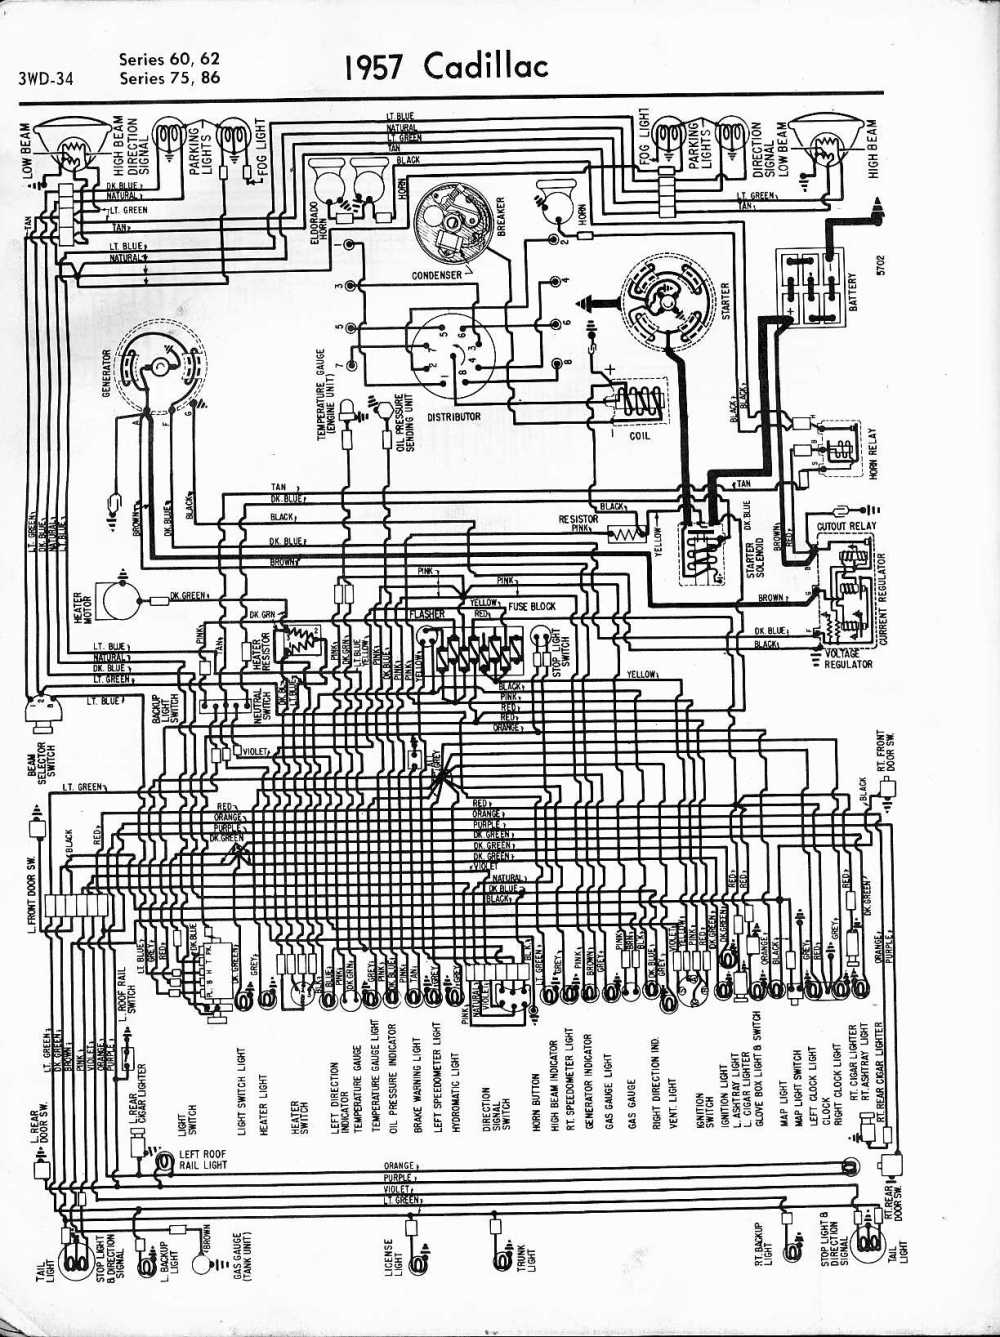 medium resolution of 1956 cadillac wiring diagram simple wiring diagram 2005 cadillac deville wiring diagram 68 cadillac distributor